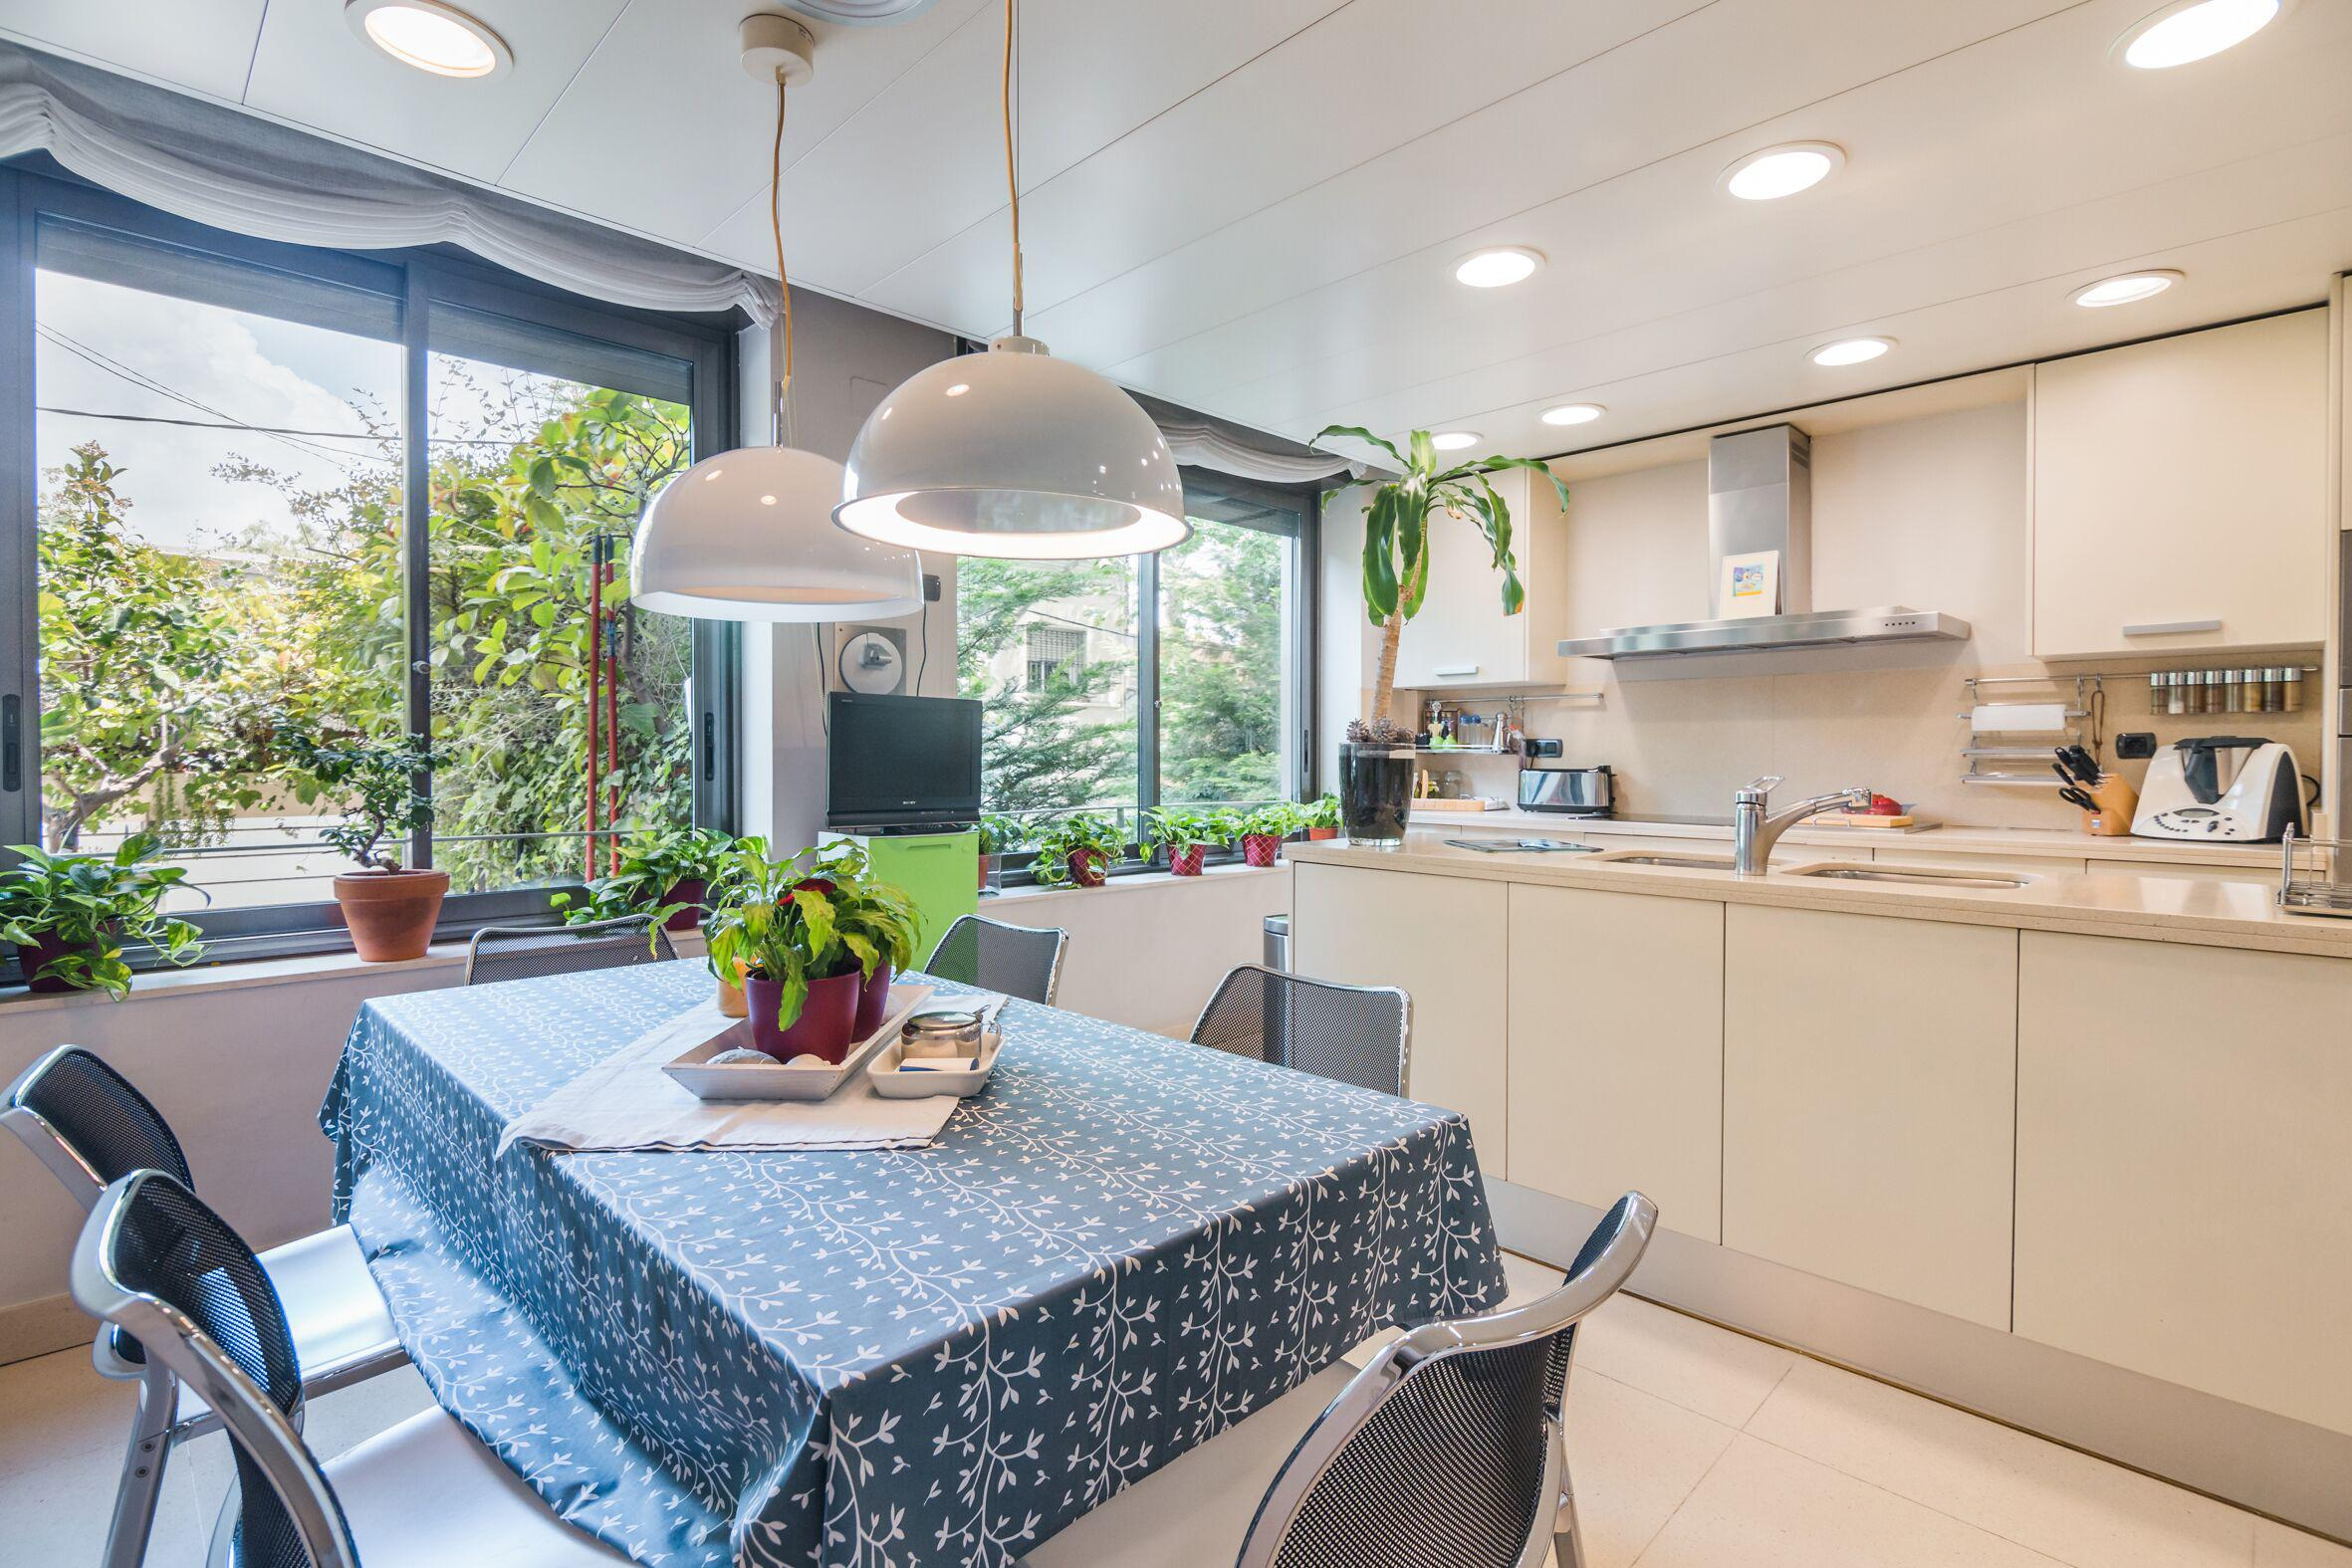 208150 Apartment for sale in Gràcia, Vallcarca and Els Penitents 20